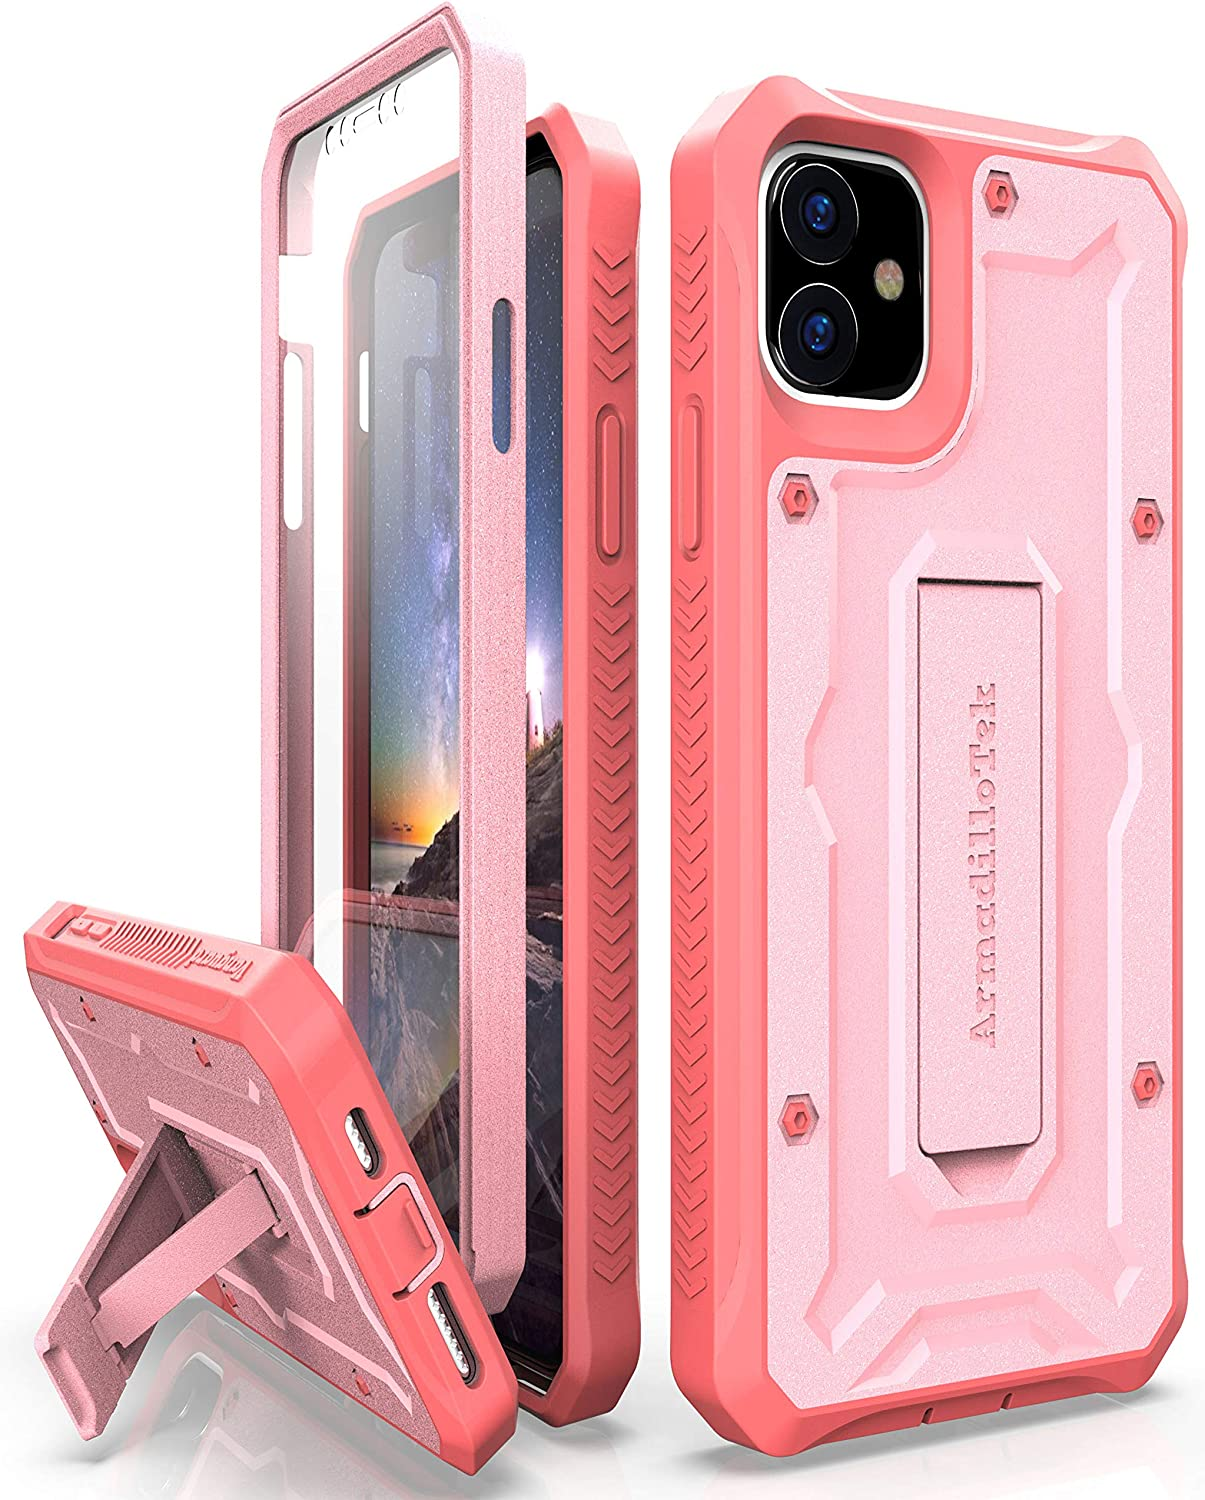 ArmadilloTek Vanguard Case Compatible with iPhone 11 (6.1 inches) Military Grade Full-Body Rugged with Kickstand and Built-in Screen Protector - Pink